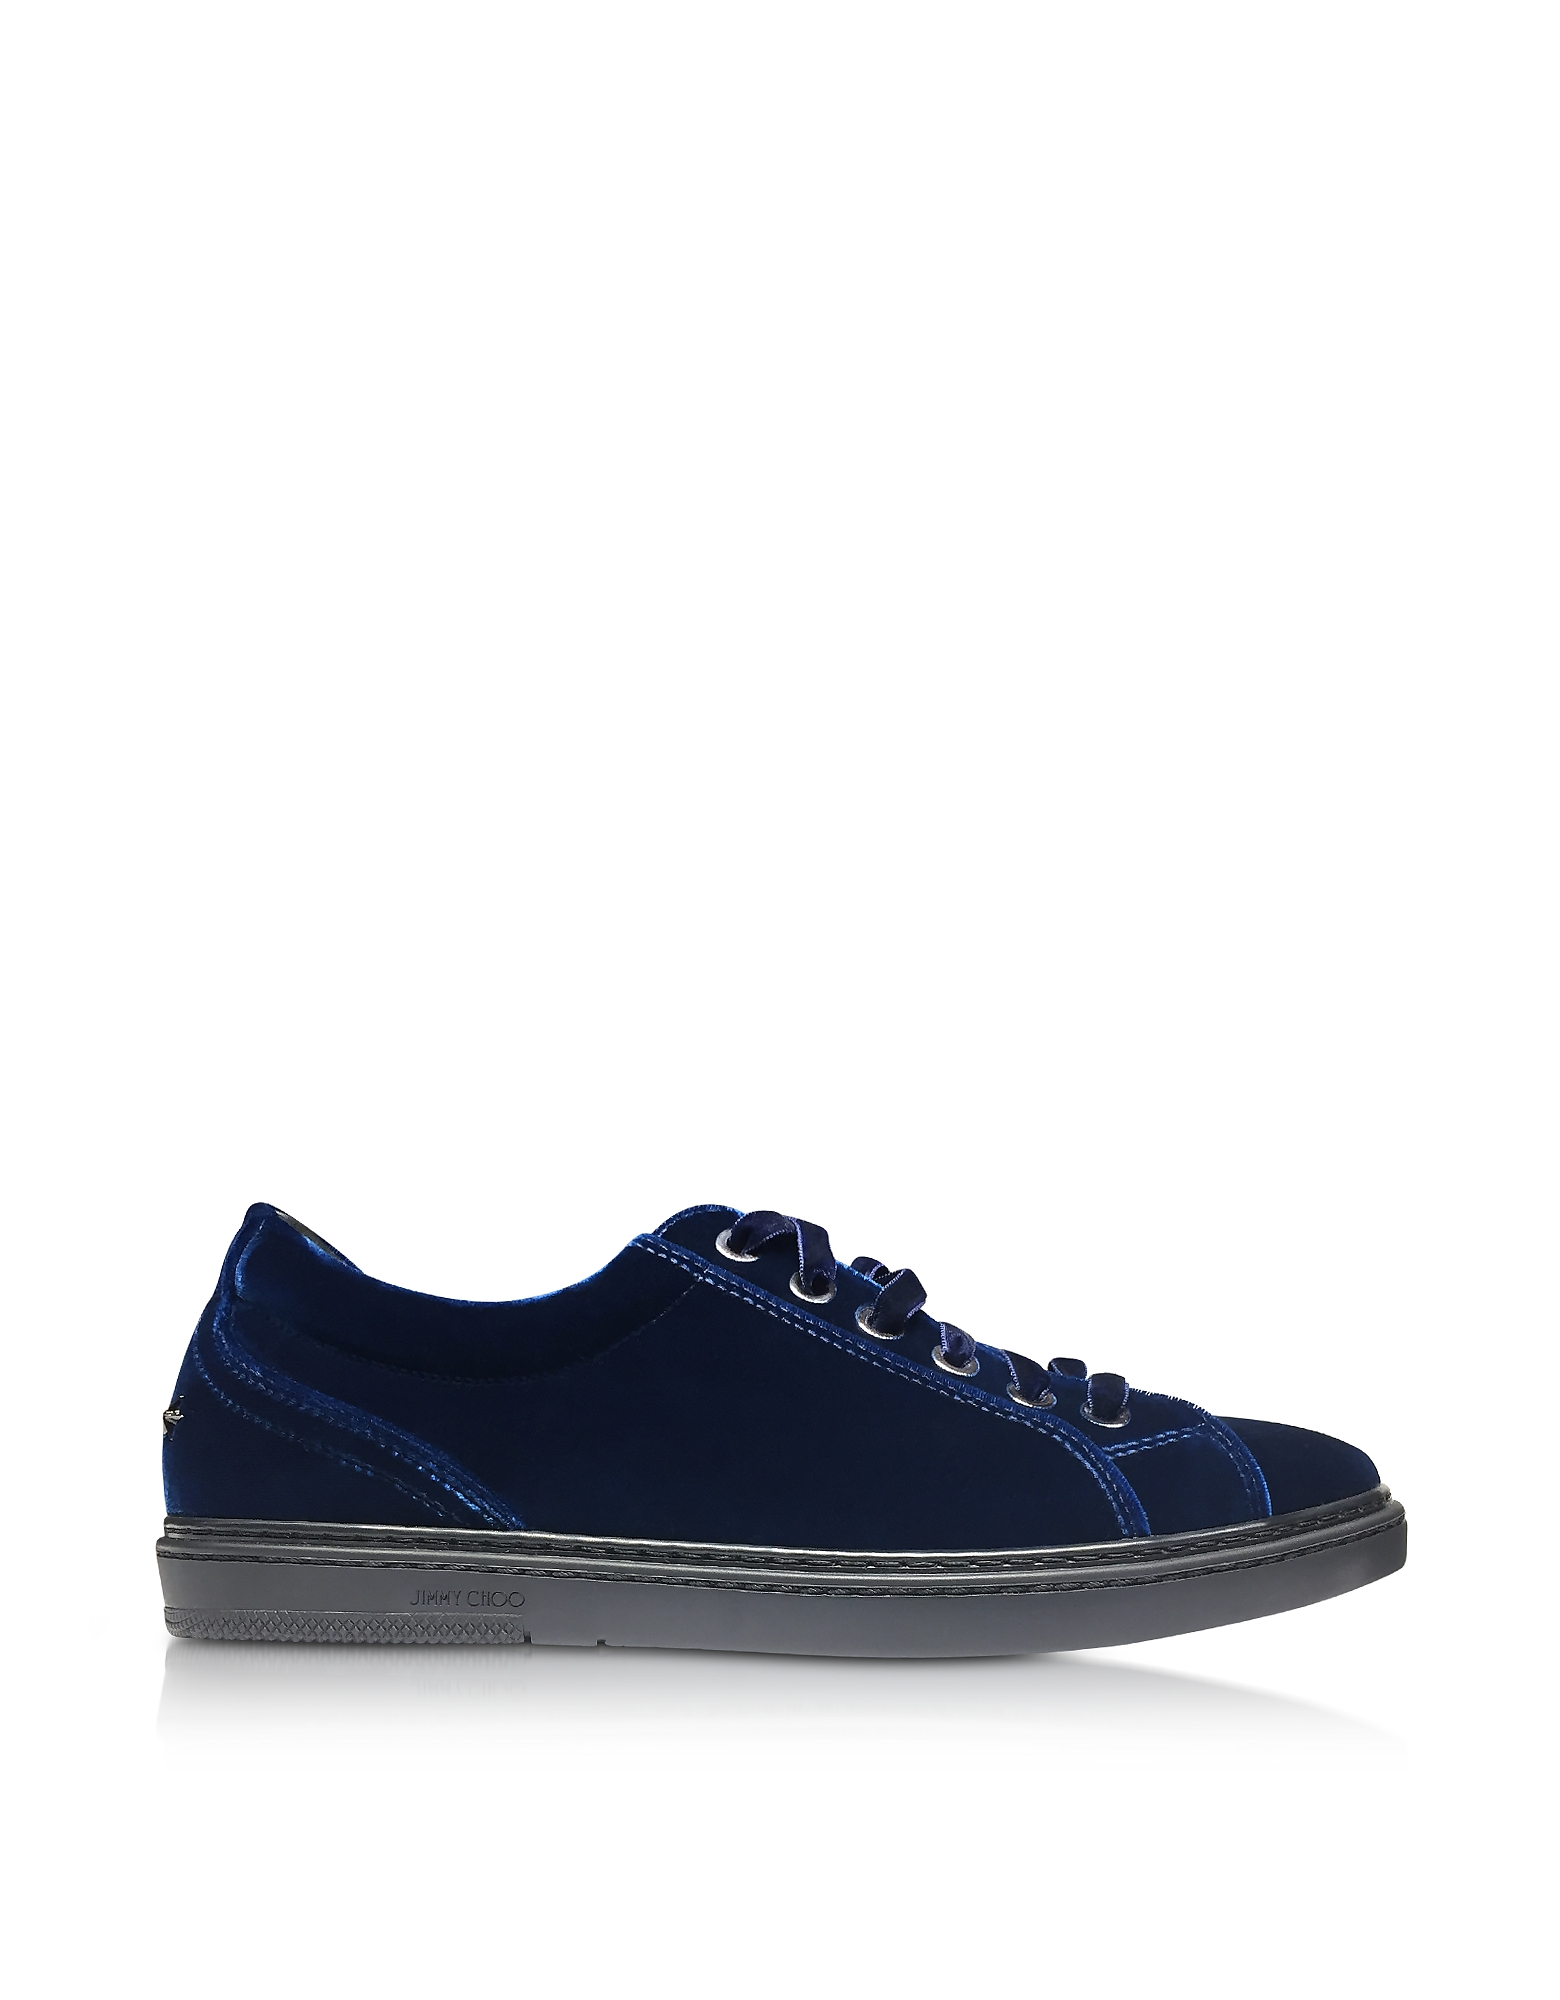 Cash Sneakers in Velluto Blu Navy